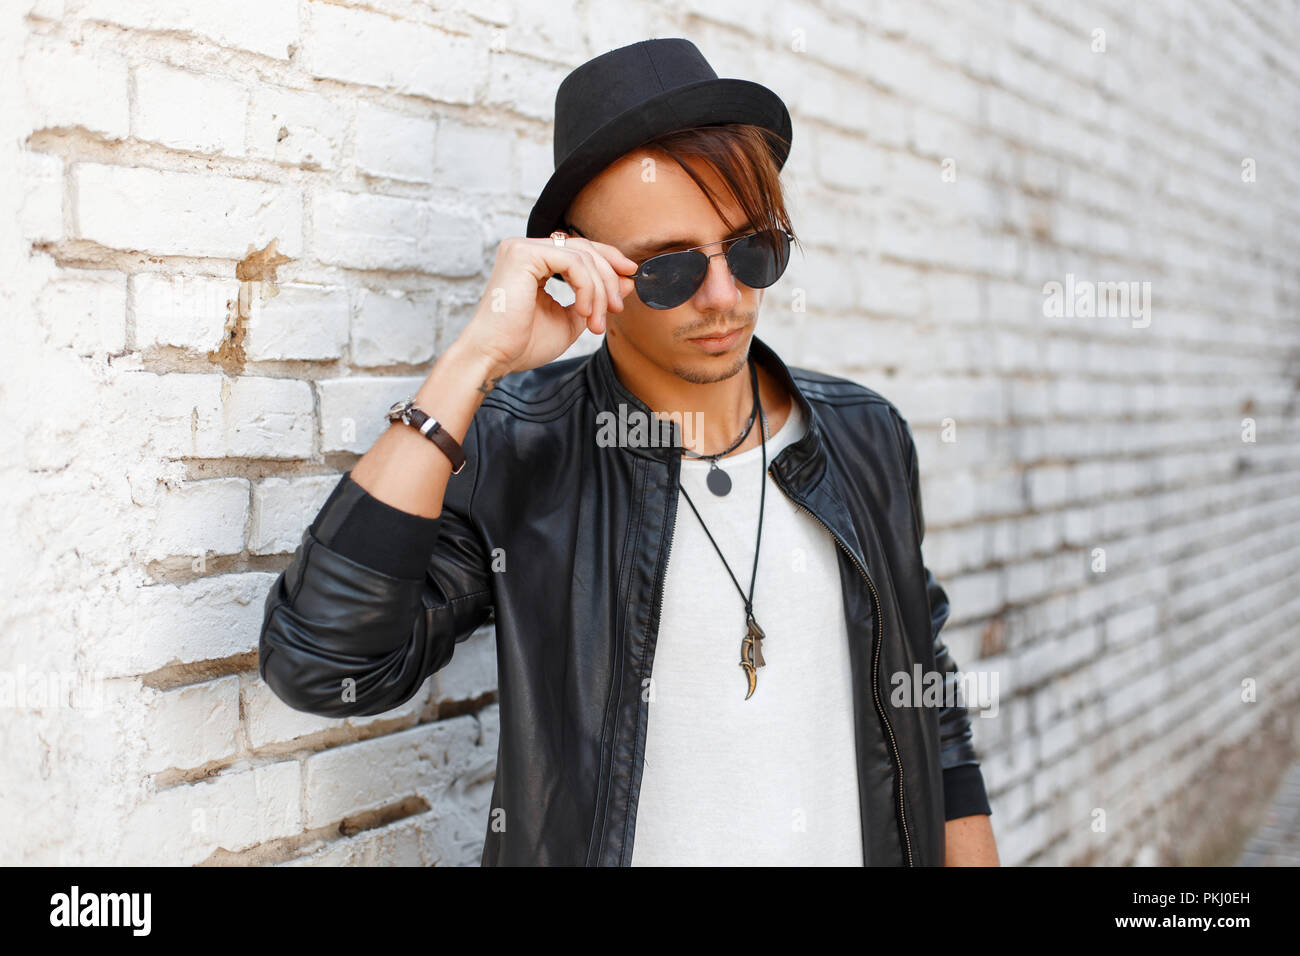 Fashionable young handsome man wearing sunglasses 45301265854